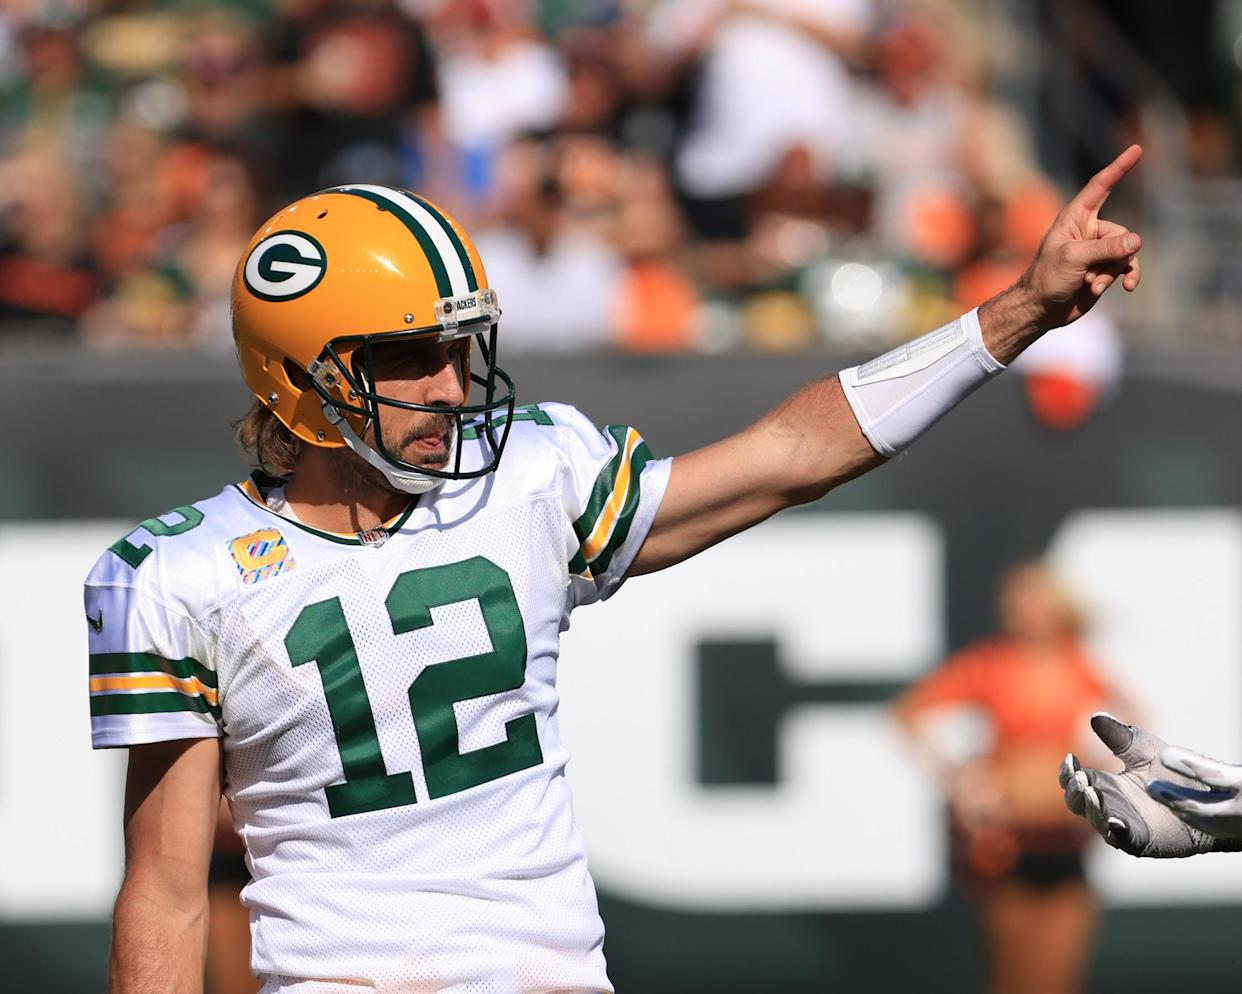 CINCINNATI, OH - OCTOBER 10: Green Bay Packers quarterback Aaron Rodgers (12) reacts during the game against the Green Bay Packers and the Cincinnati Bengals on October 10, 2021, at Paul Brown Stadium in Cincinnati, OH. (Photo by Ian Johnson/Icon Sportswire via Getty Images)